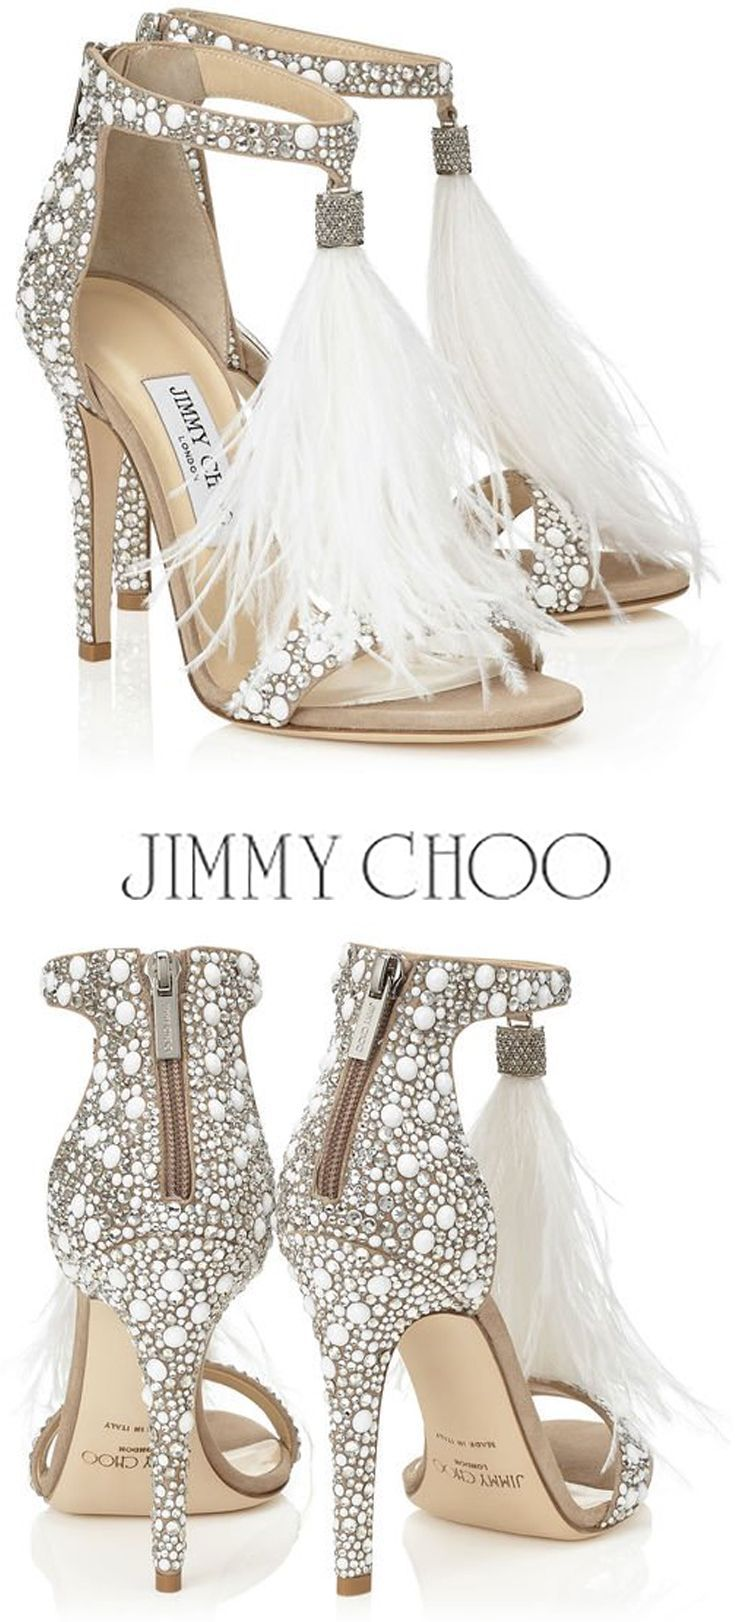 a8708cccb8 JIMMY CHOO VIOLA 110 White Suede and Hot Fix Crystal Embellished Sandals  with an Ostrich Feather Tassel #shoes #heels #ad #sandals #jimmychoo #tassel